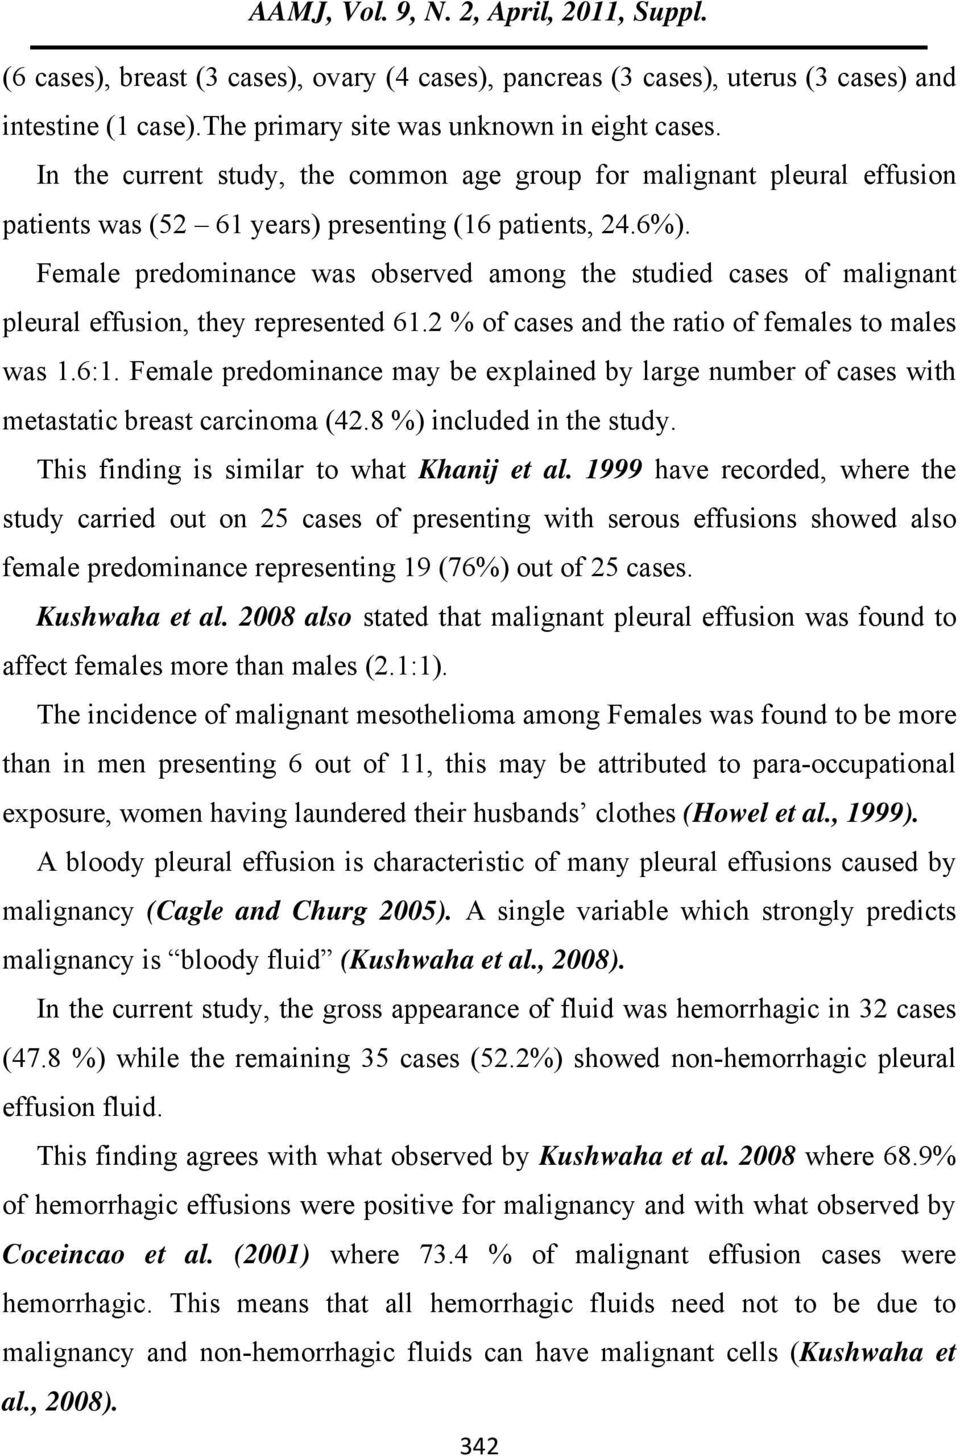 Female predominance was observed among the studied cases of malignant pleural effusion, they represented 61.2 % of cases and the ratio of females to males was 1.6:1.